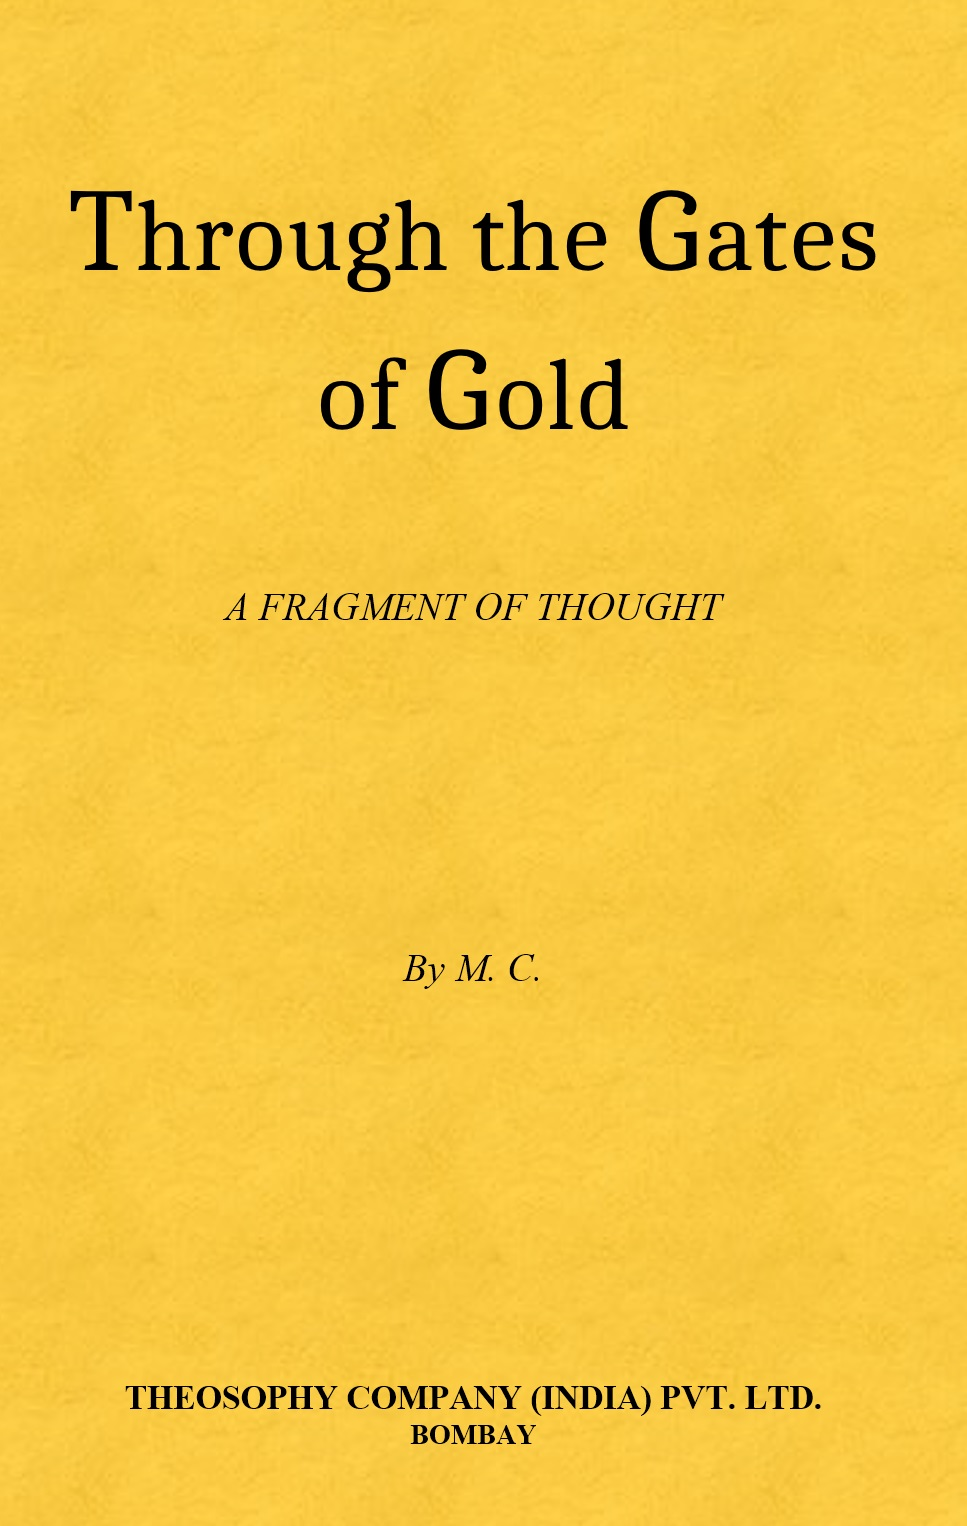 Through the Gates of Gold by Mabel Collins by Mabel Collins